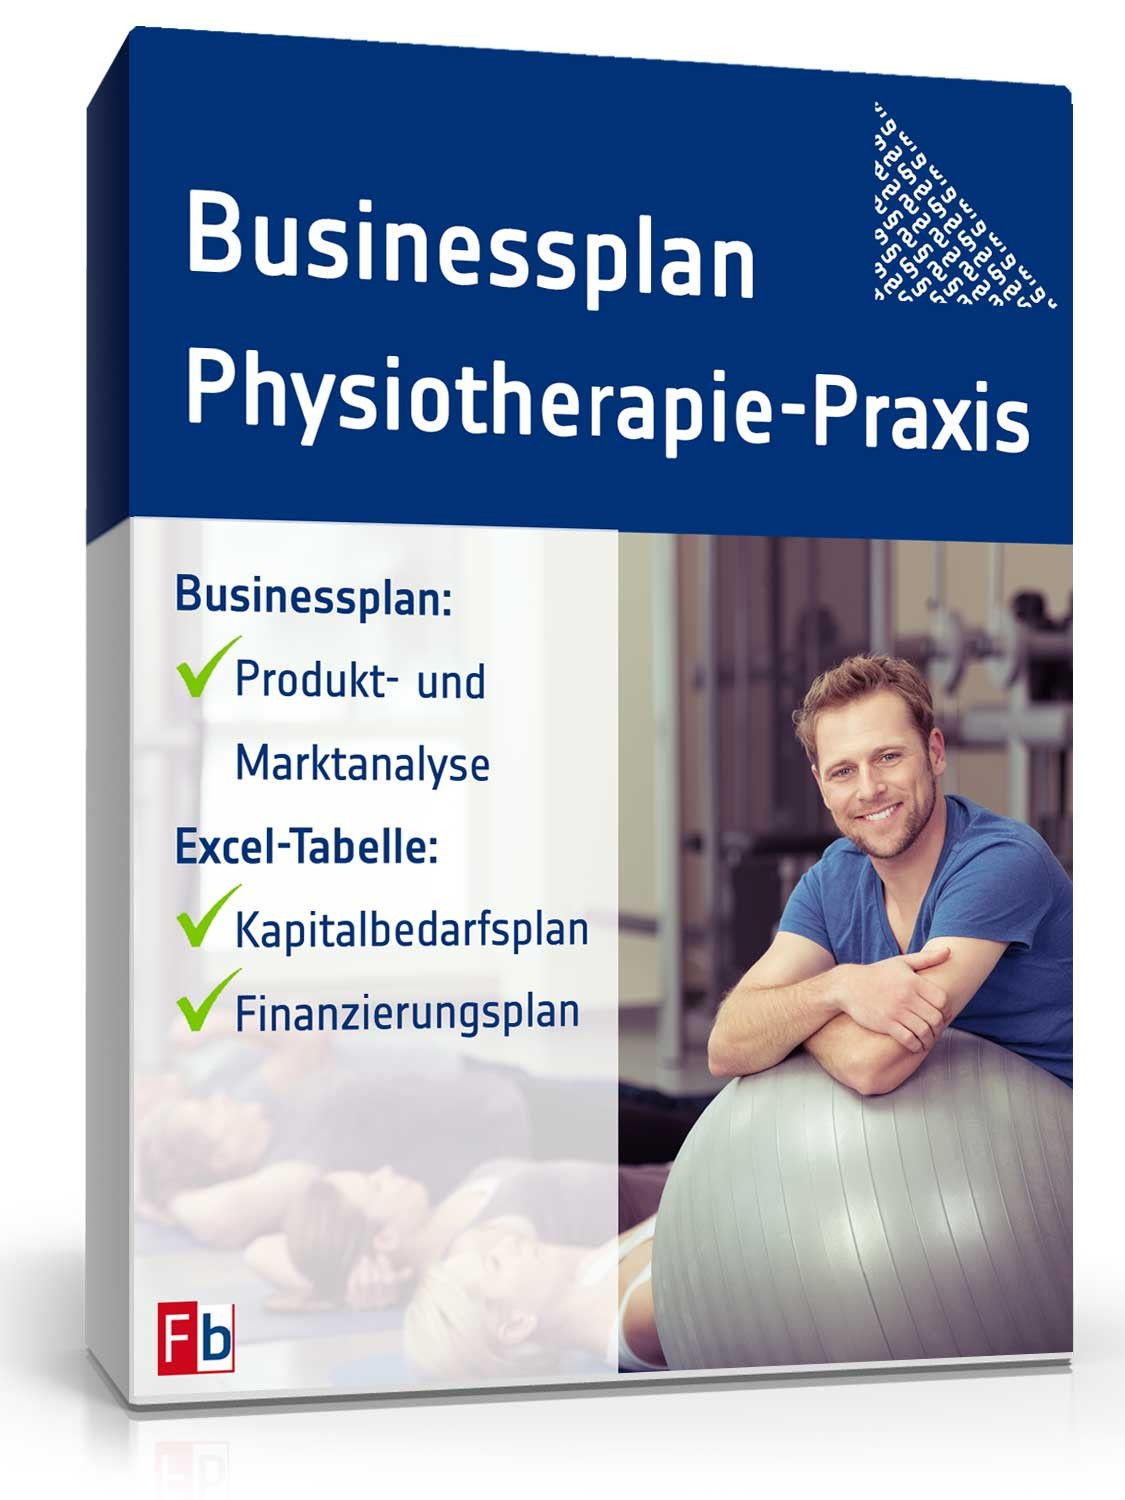 beispiel business plan physiotherapie basel